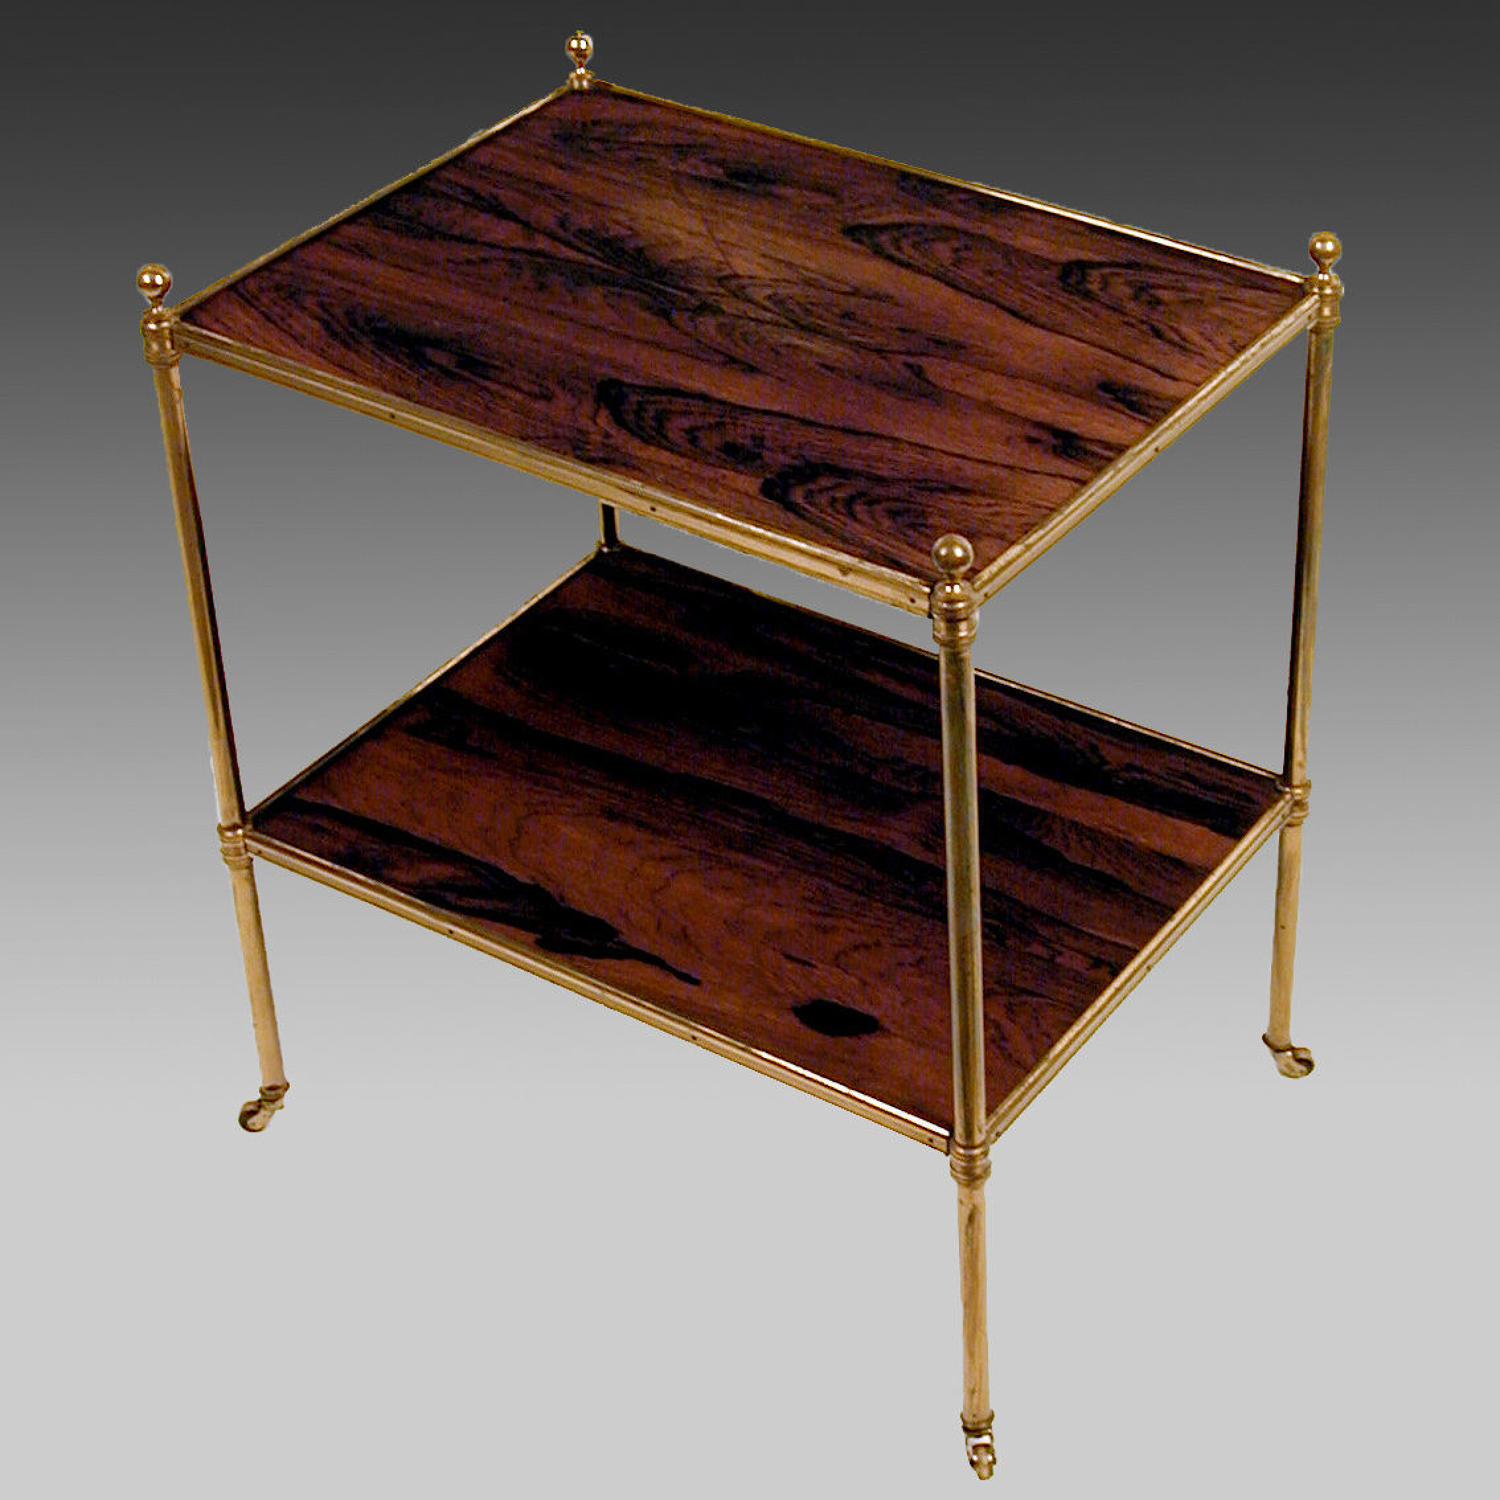 Vintage rosewood and gilt brass etagère